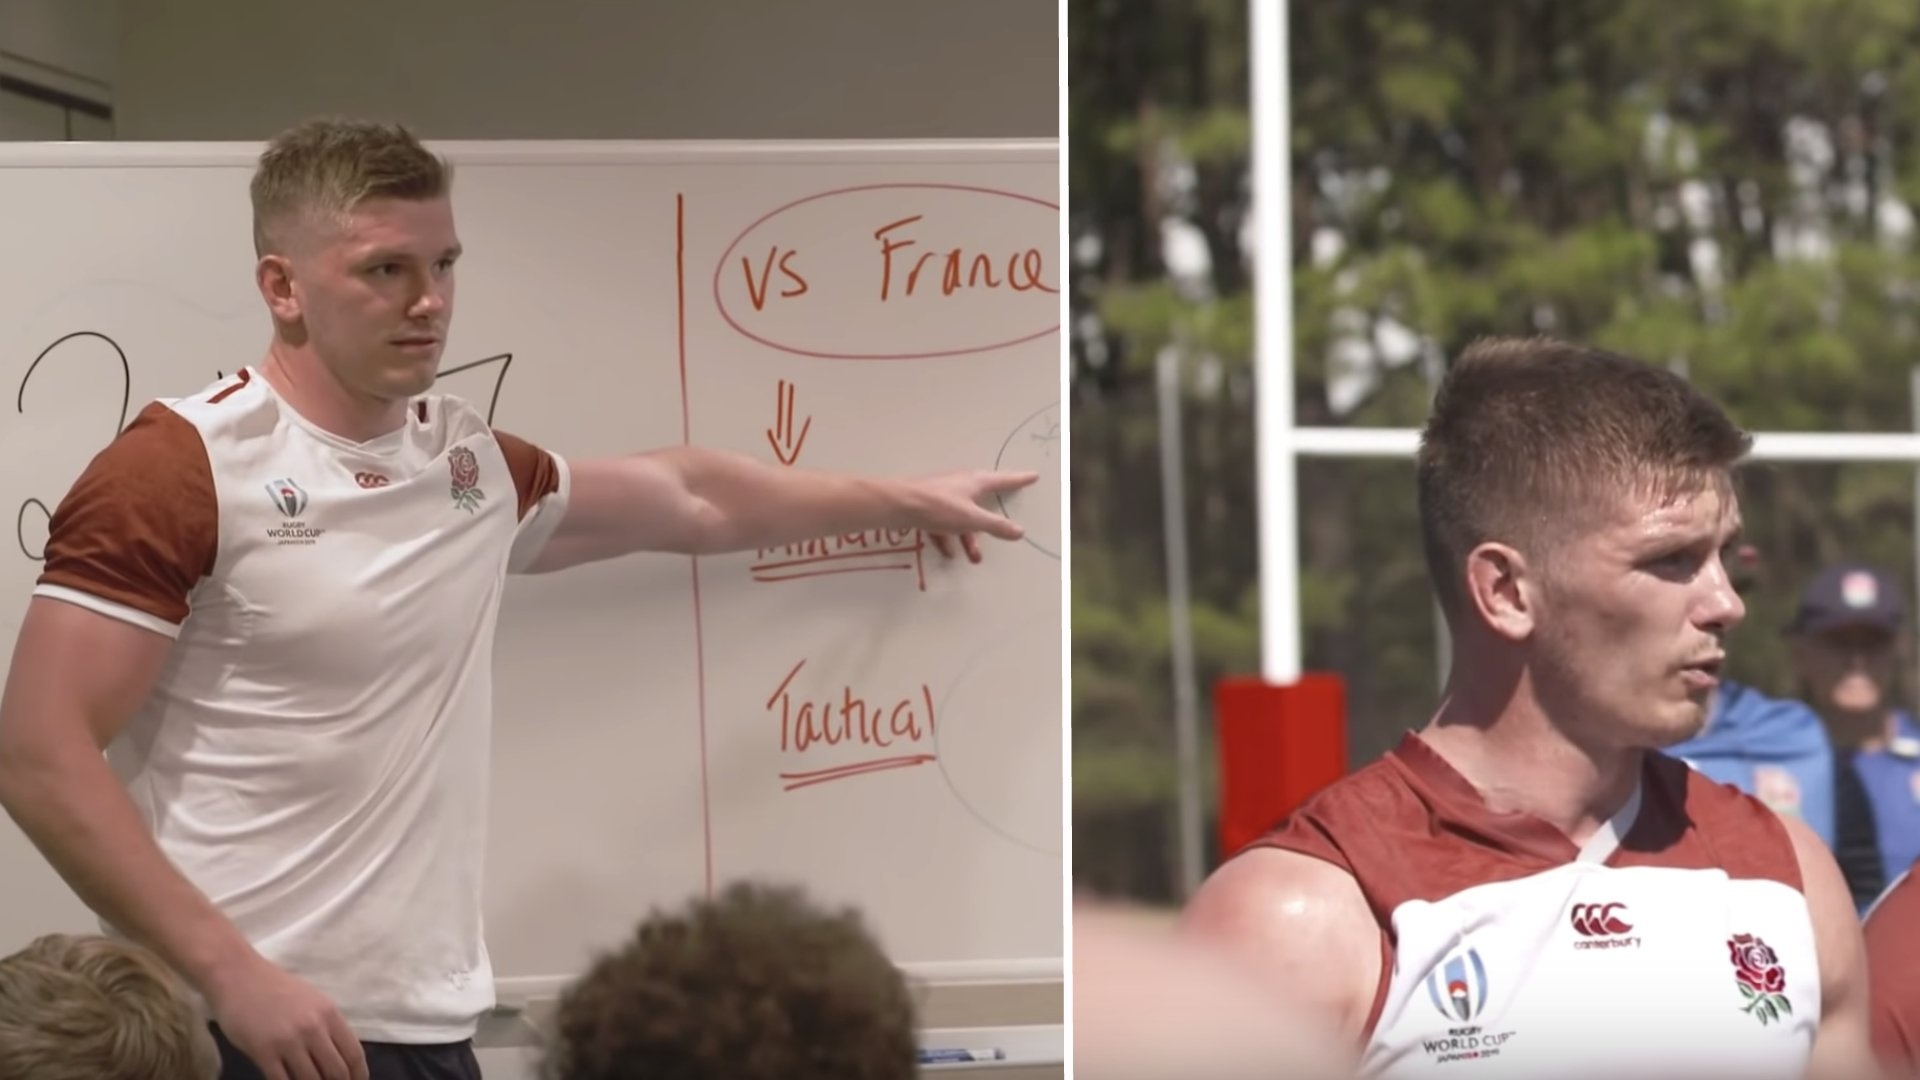 Owen Farrell's leadership in recent Rising Sons episode is reason why England will win the World Cup